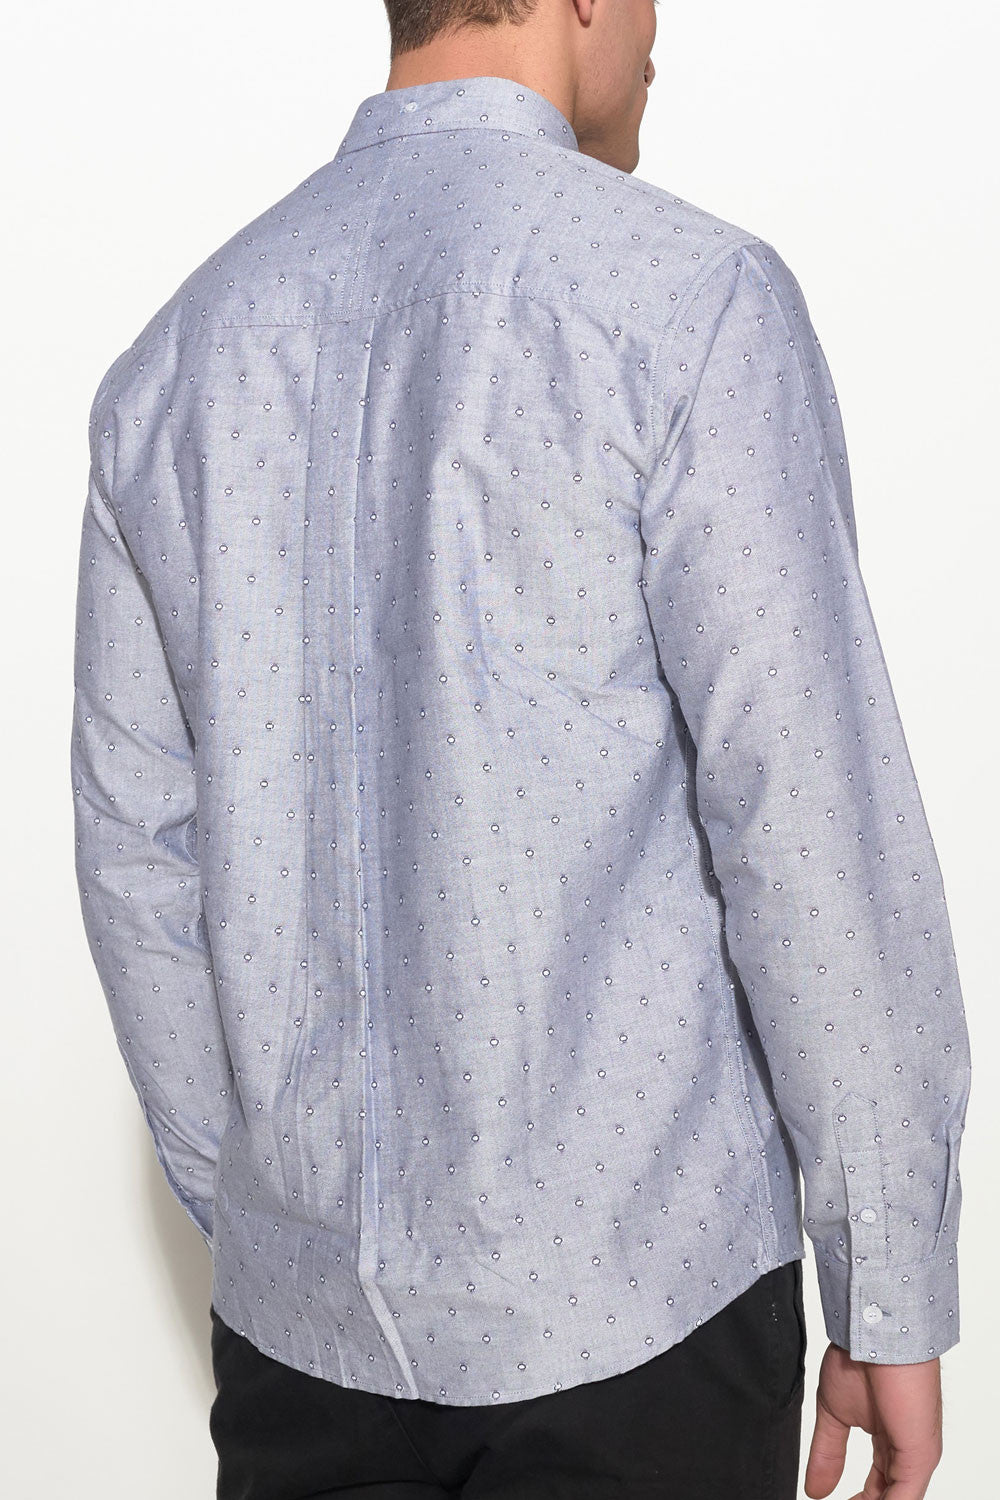 SOULLAND - GOLDSMITH OXFORD SHIRT – GREY W. DOTS - Men Clothing - Ozon Boutique - 2